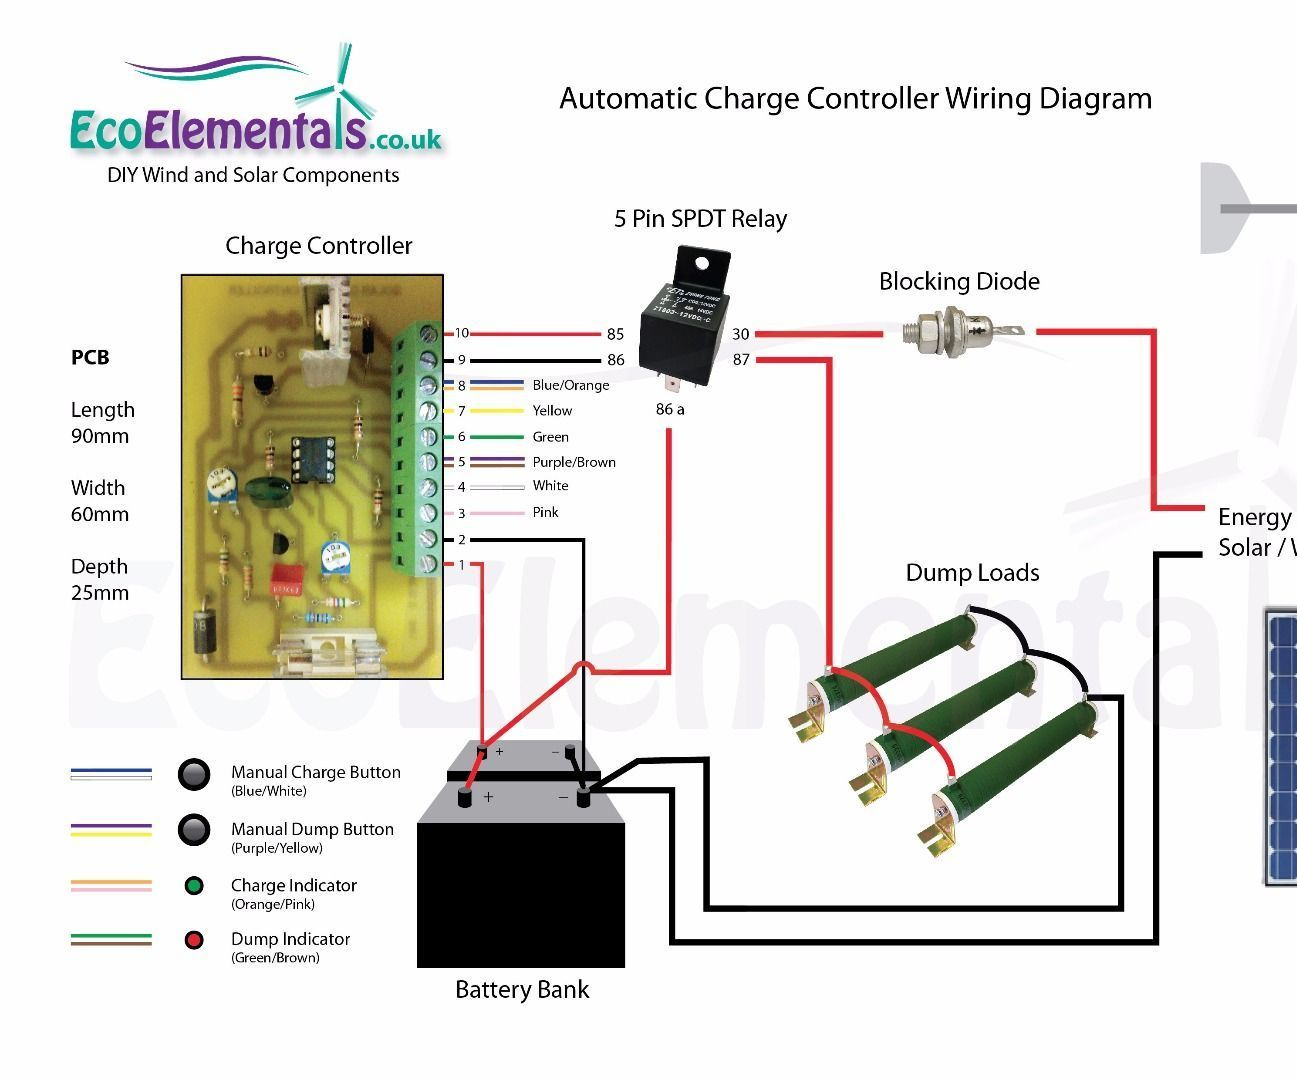 Charge controller wiring diagram for diy wind turbine or solar charge controller wiring diagram for diy wind turbine or solar panels pooptronica Gallery